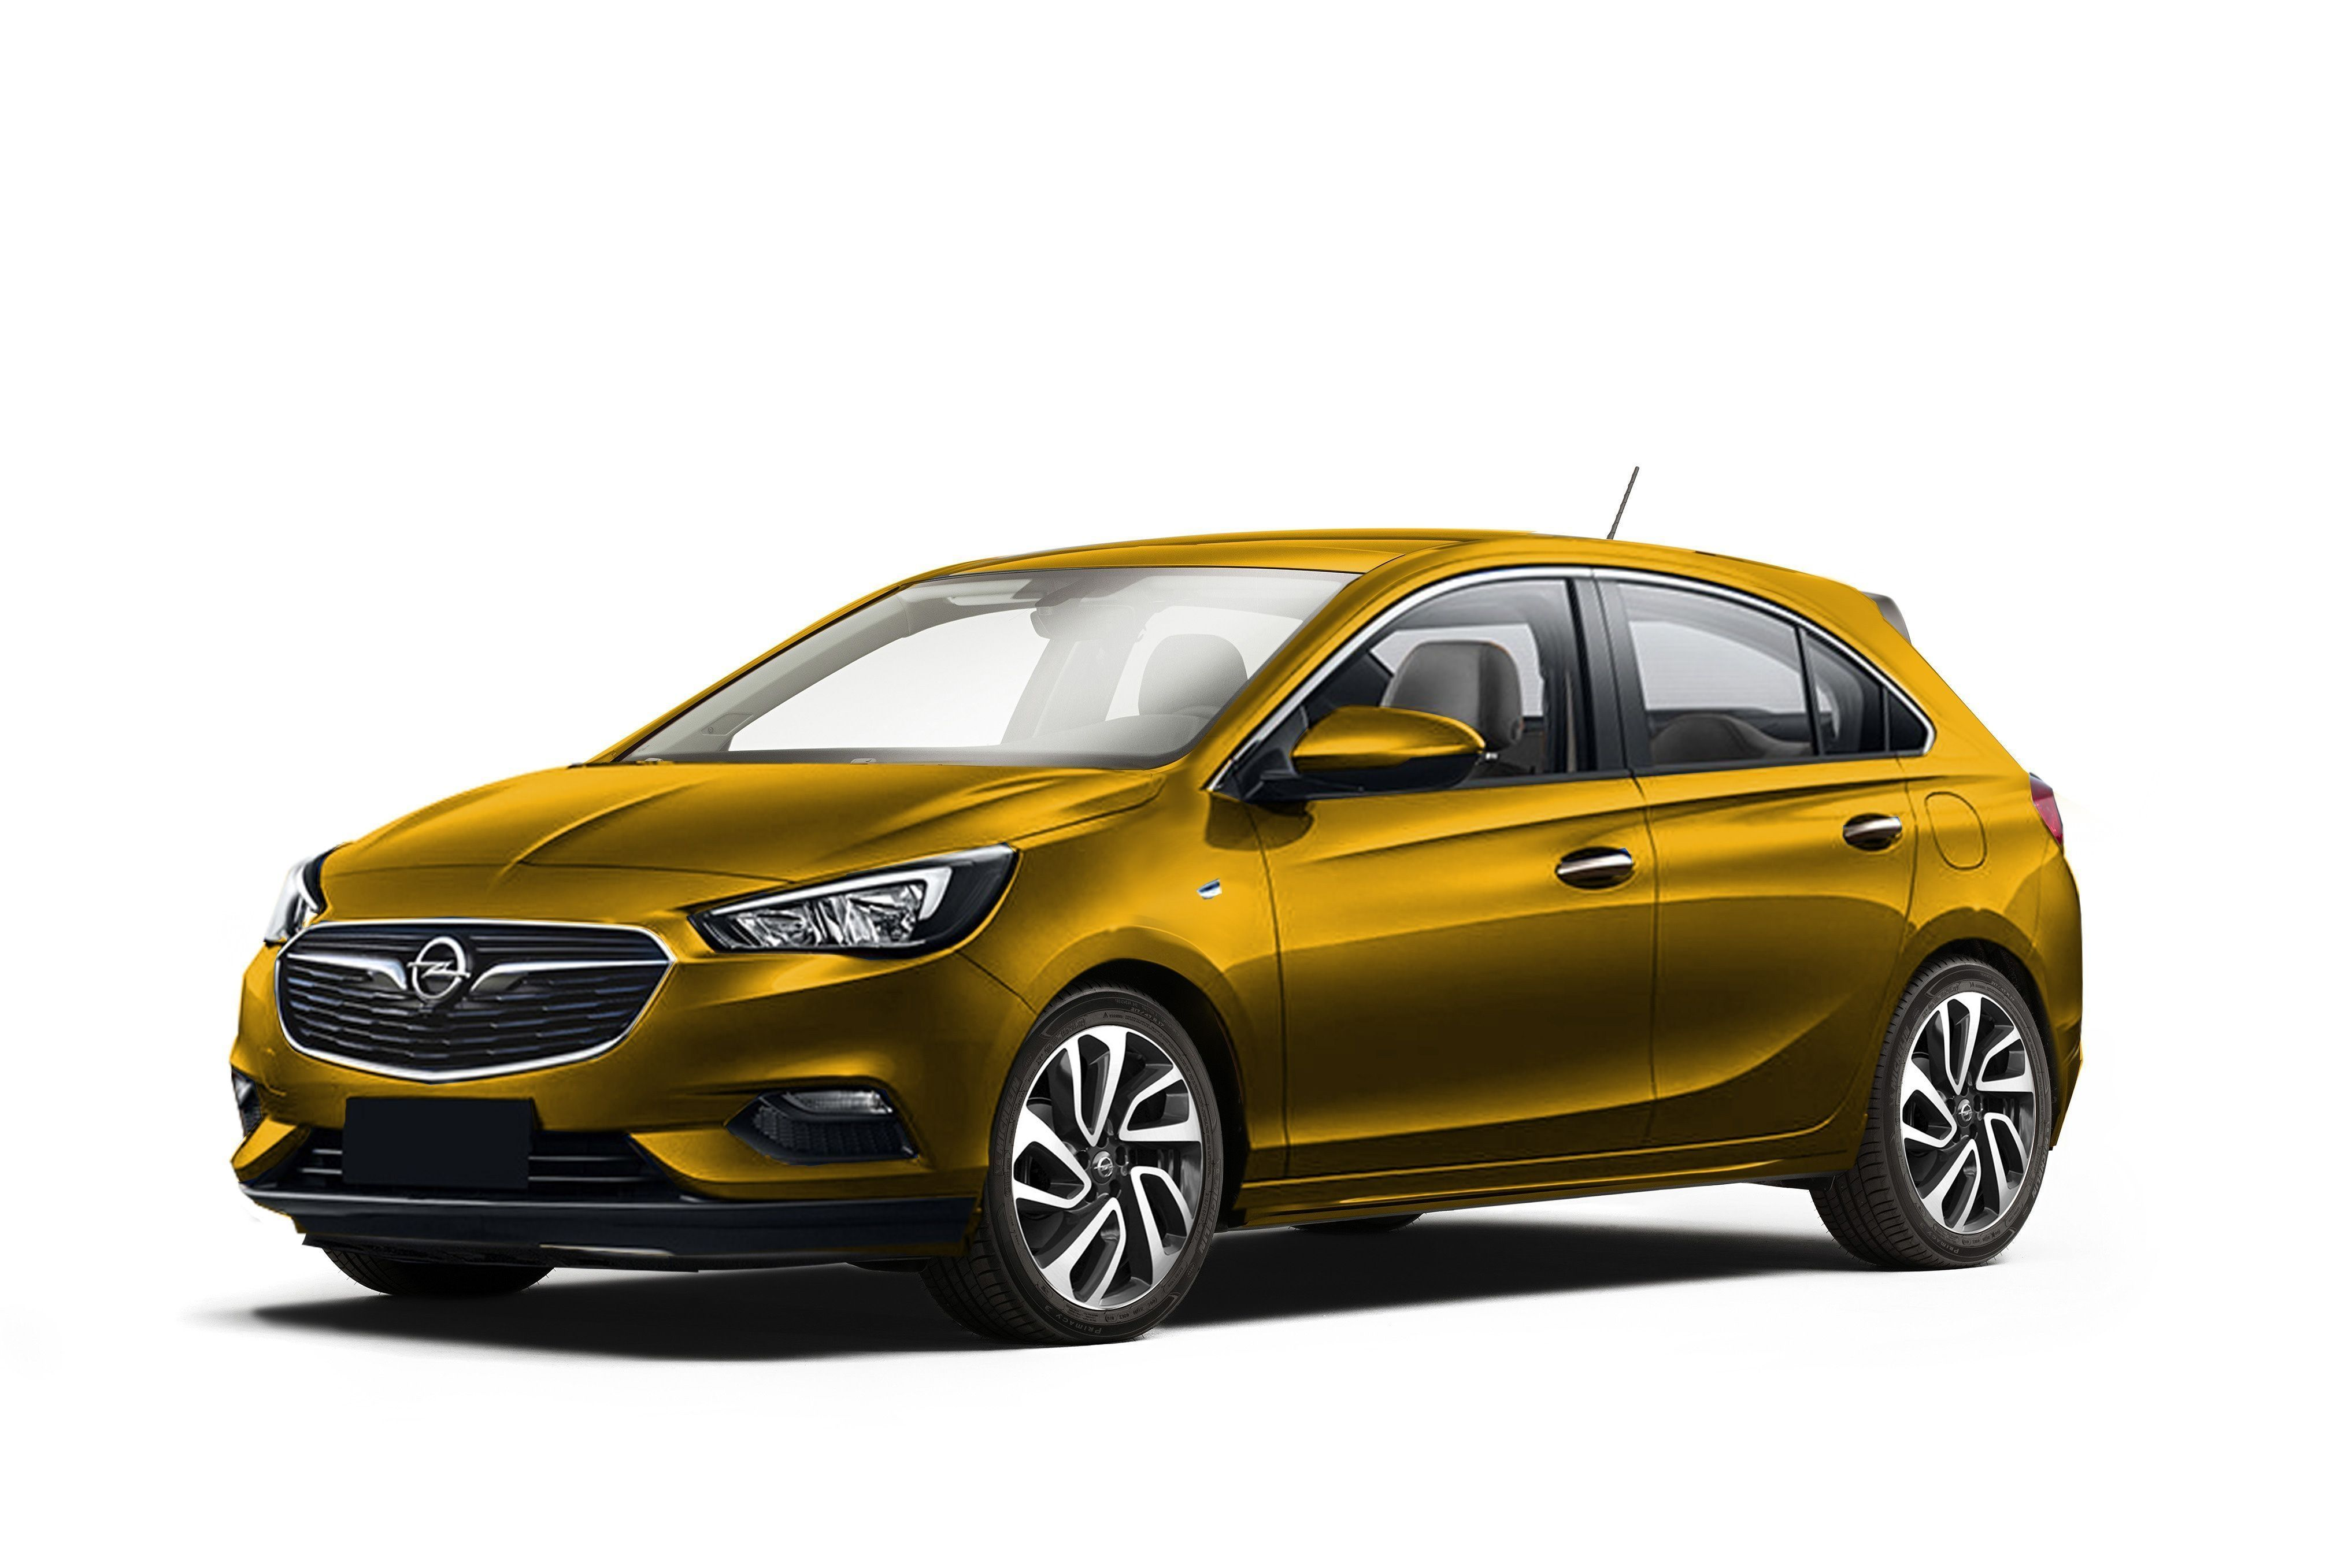 2020 Opel Corsa Reviews Opel Corsa Opel Car Salesman